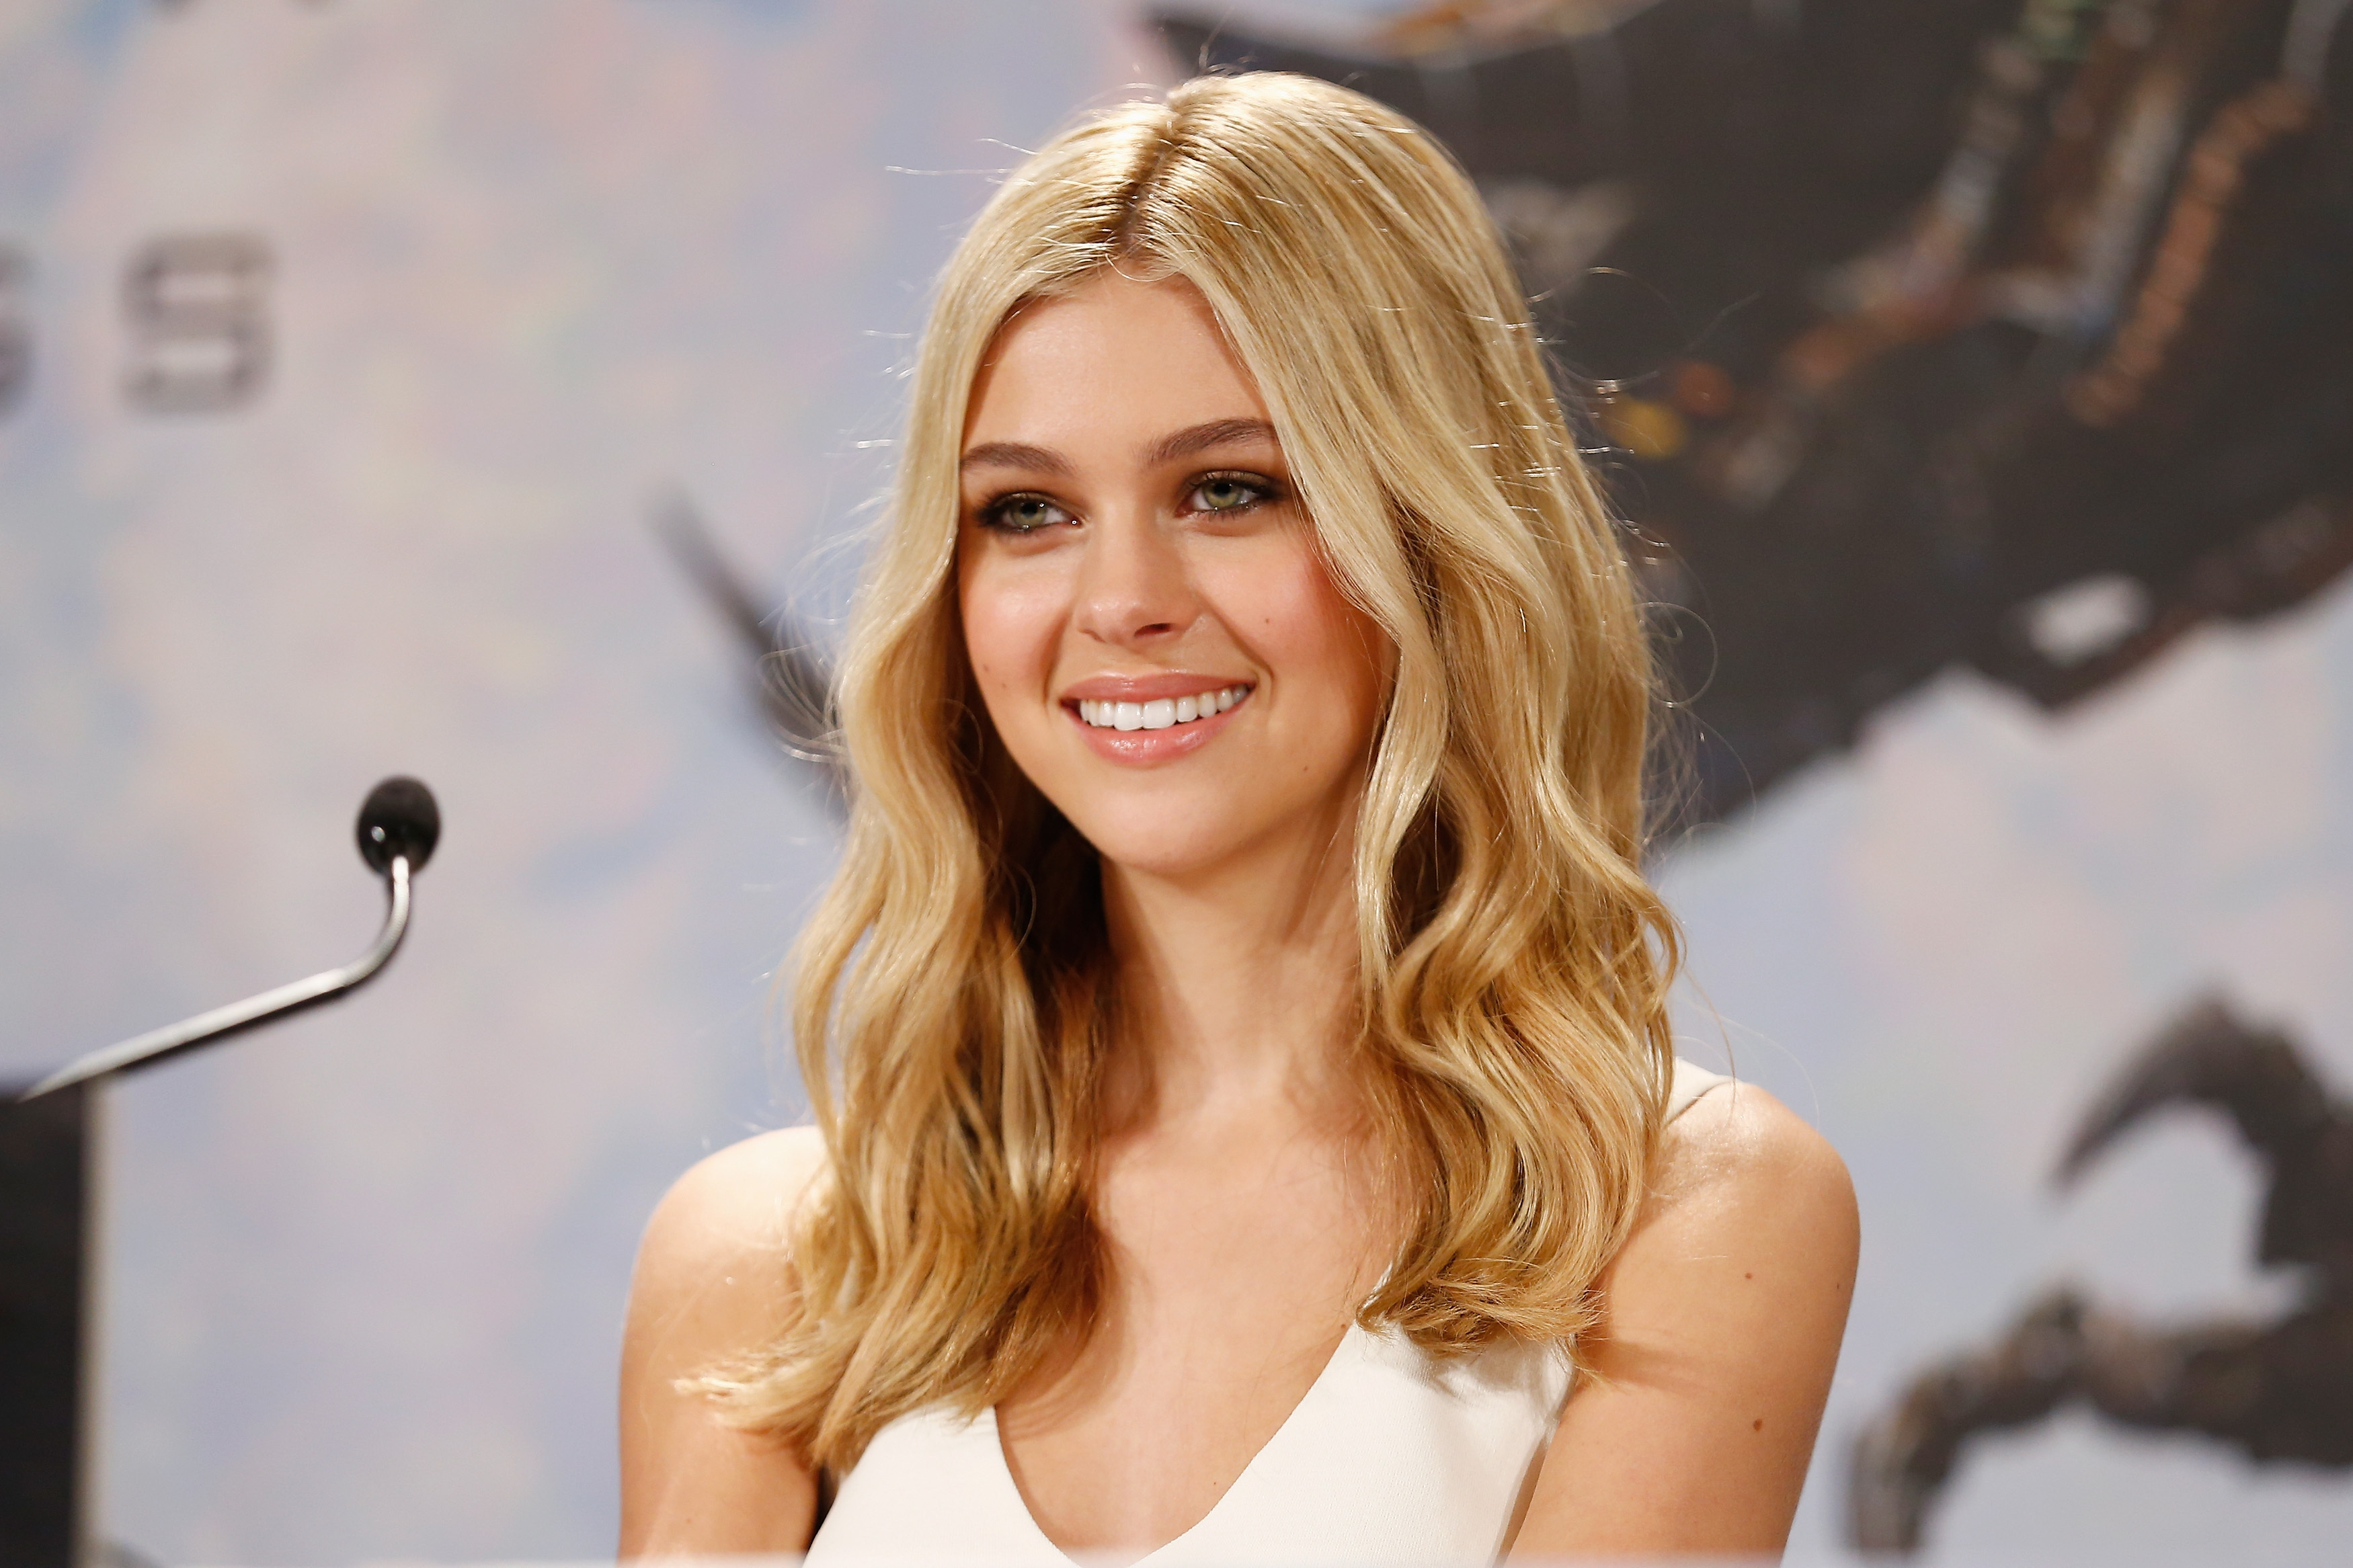 nicola peltz wallpapers images photos pictures backgrounds. Black Bedroom Furniture Sets. Home Design Ideas